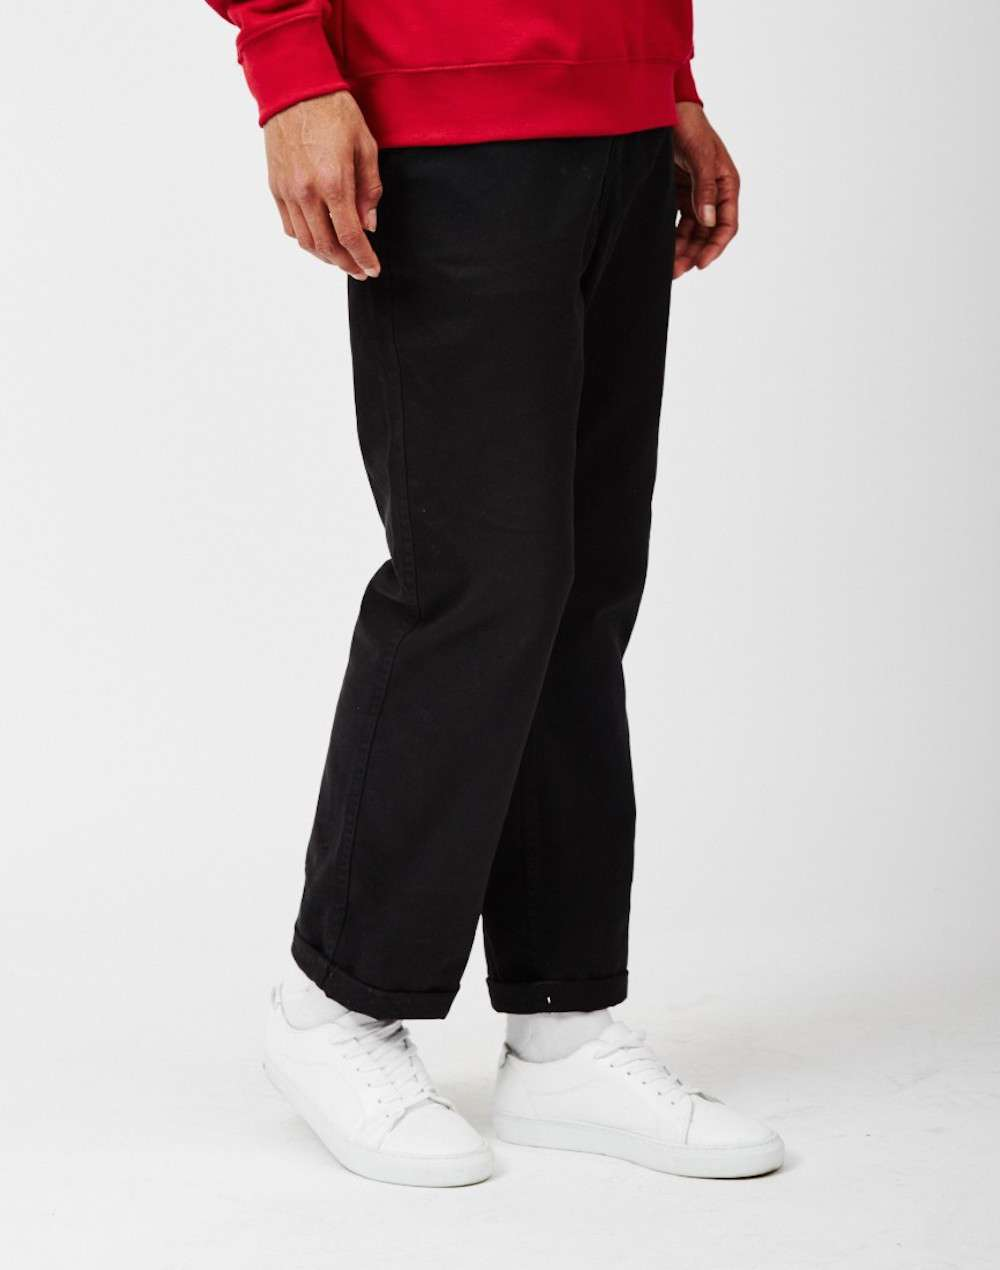 The Idle Man Black Chinos men